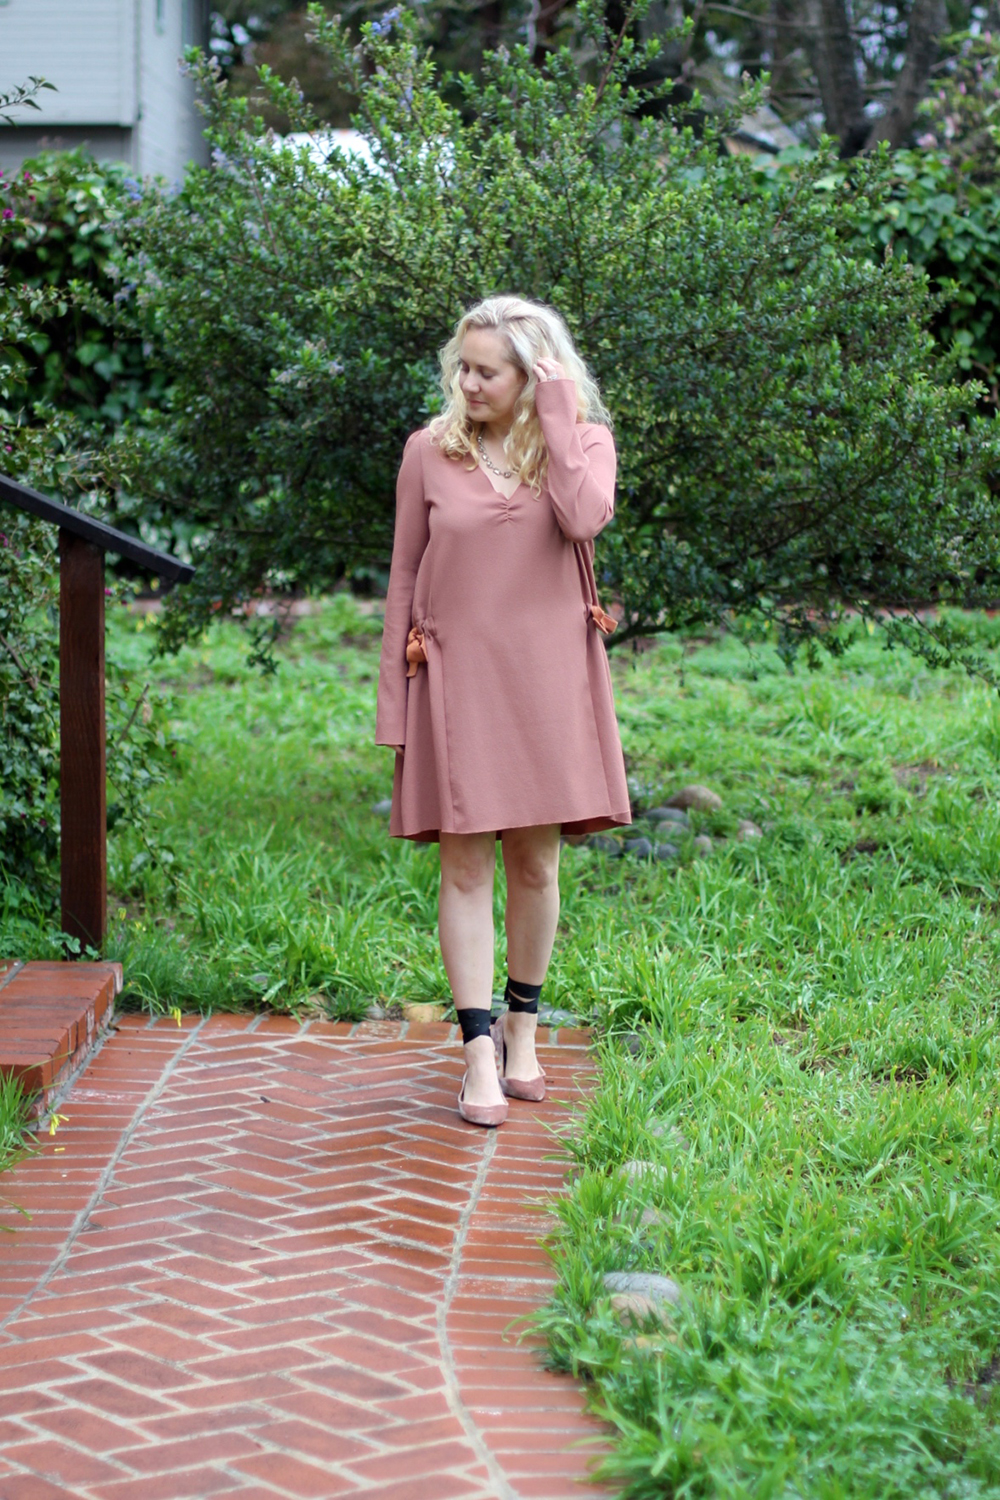 Dusty Pink Dress-See by Chloe-Valentines Day Outfit-Outfit Inspiration-Ankle Tie Flats-Have Need Want 7